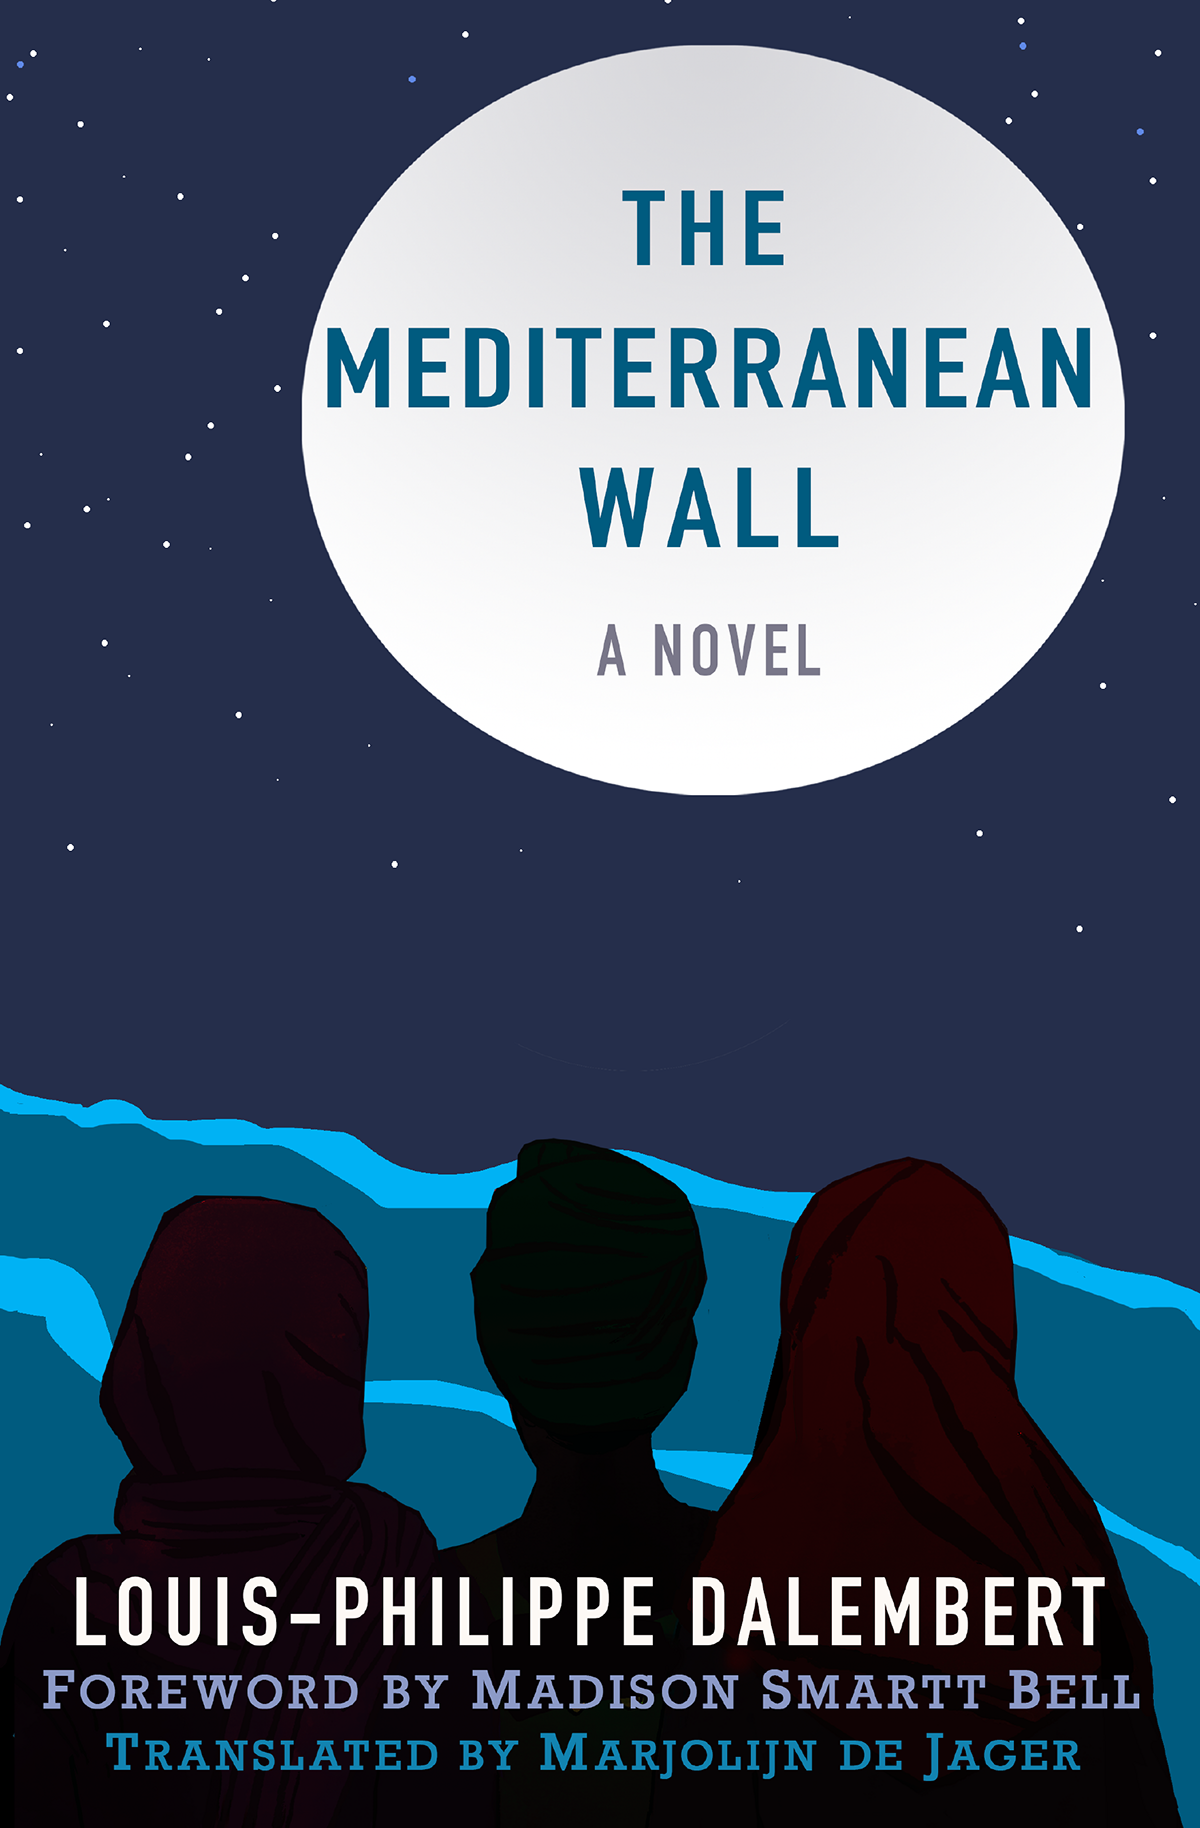 The Mediterranean Wall